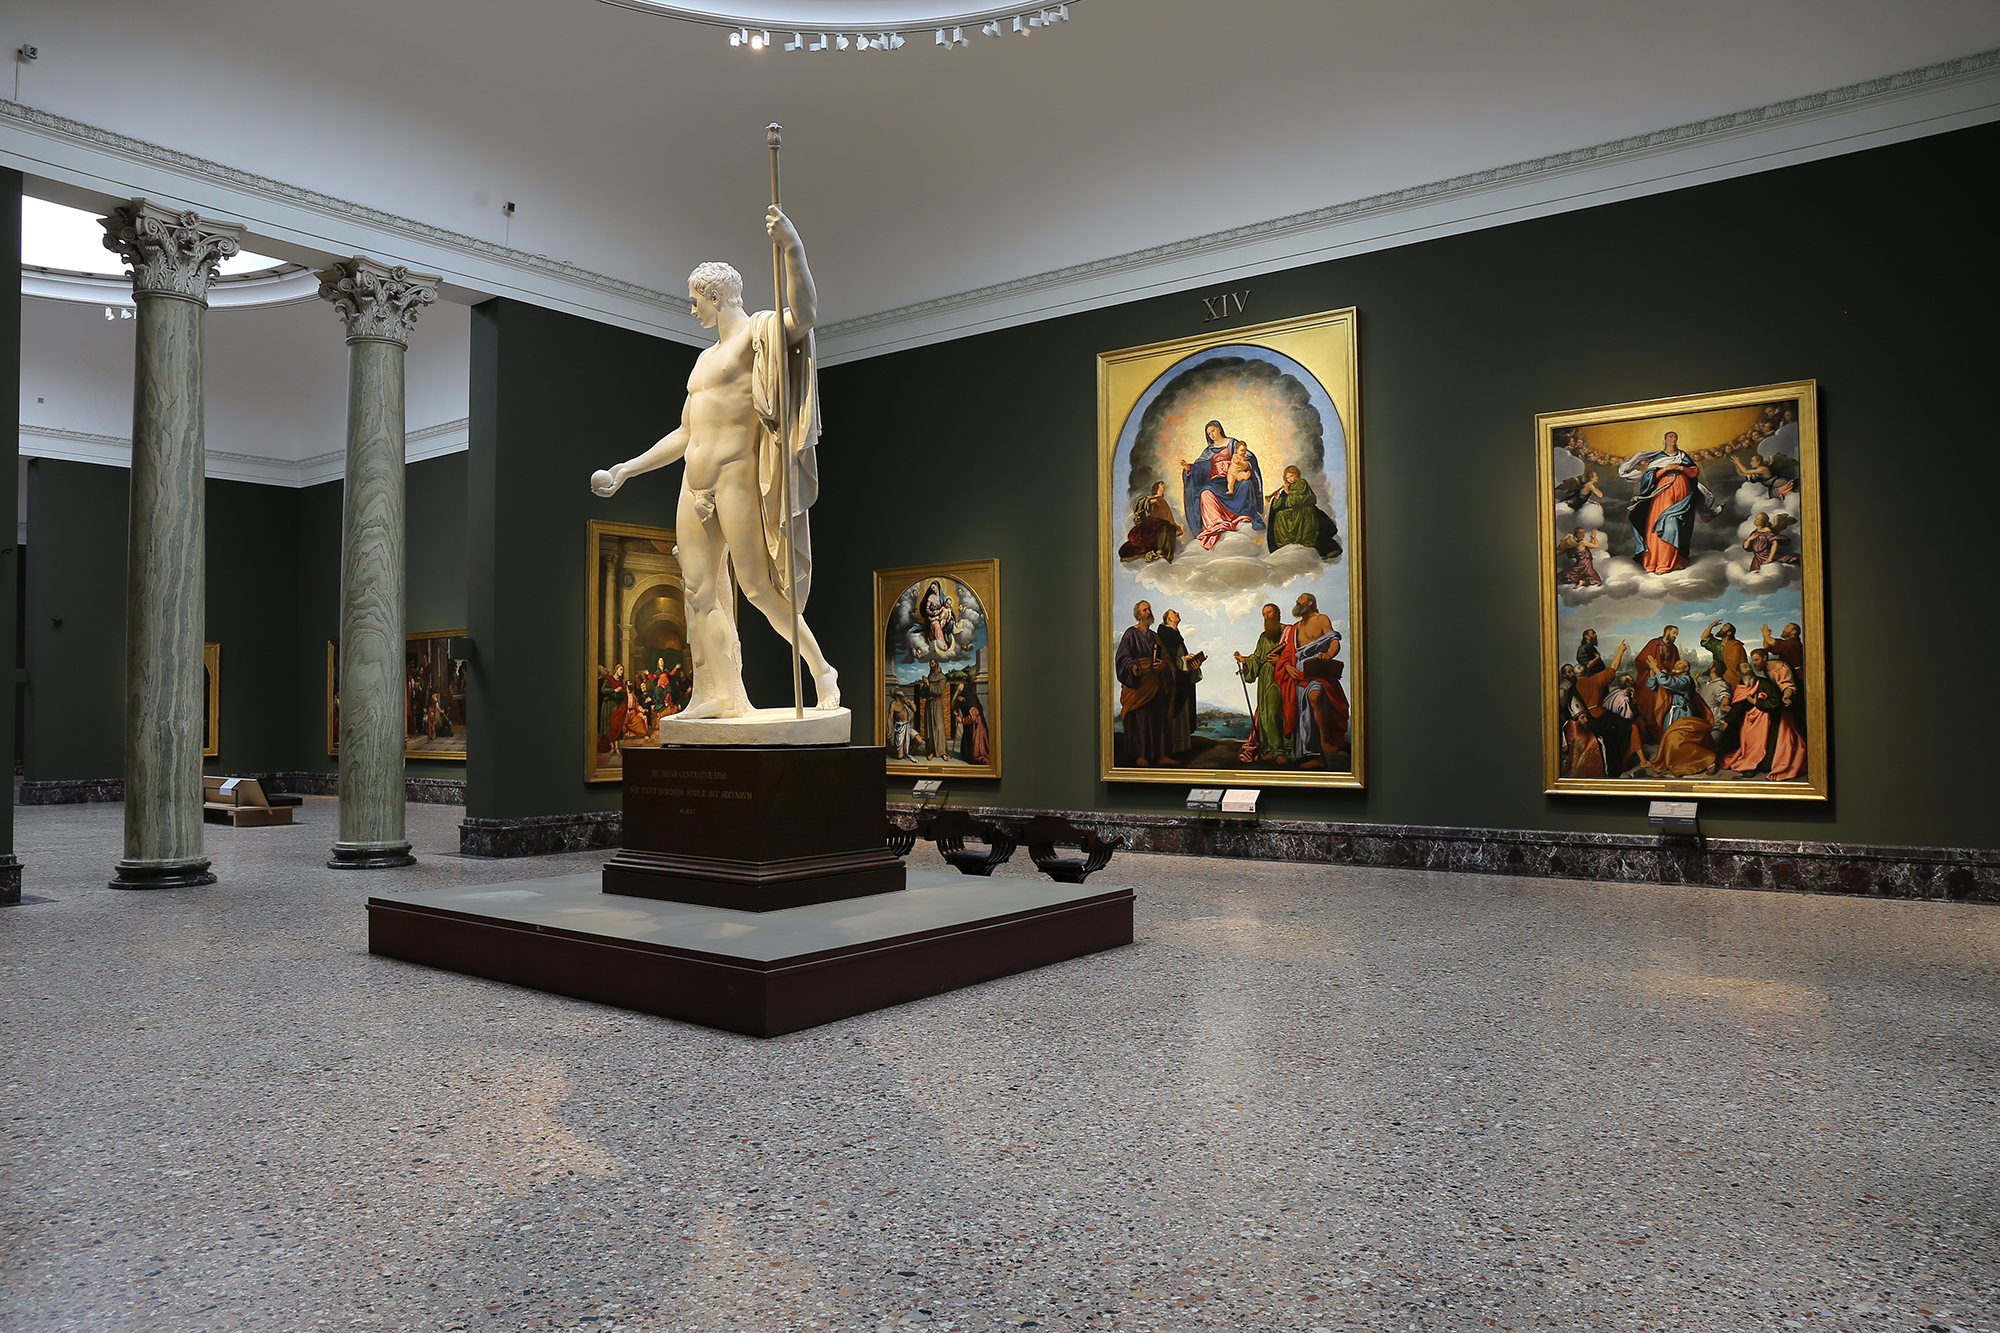 布雷拉美术馆展陈内景 Exhibition View in Pinacoteca di Brera 01.jpg